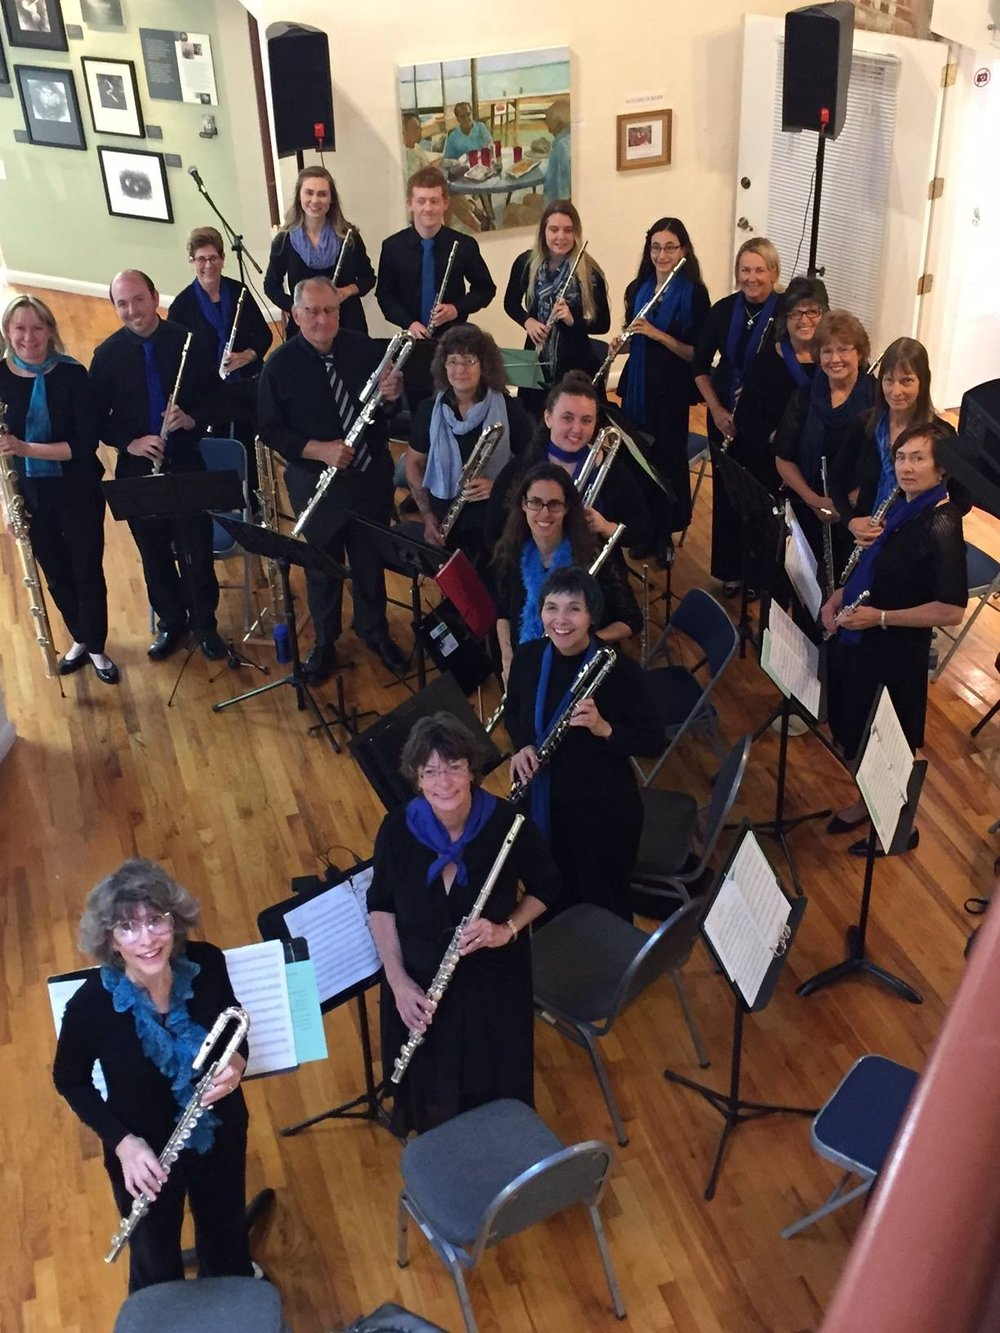 Daytona State College and Community Flute Choir at The Hub Art Gallery in New Smyrna Beach, FL